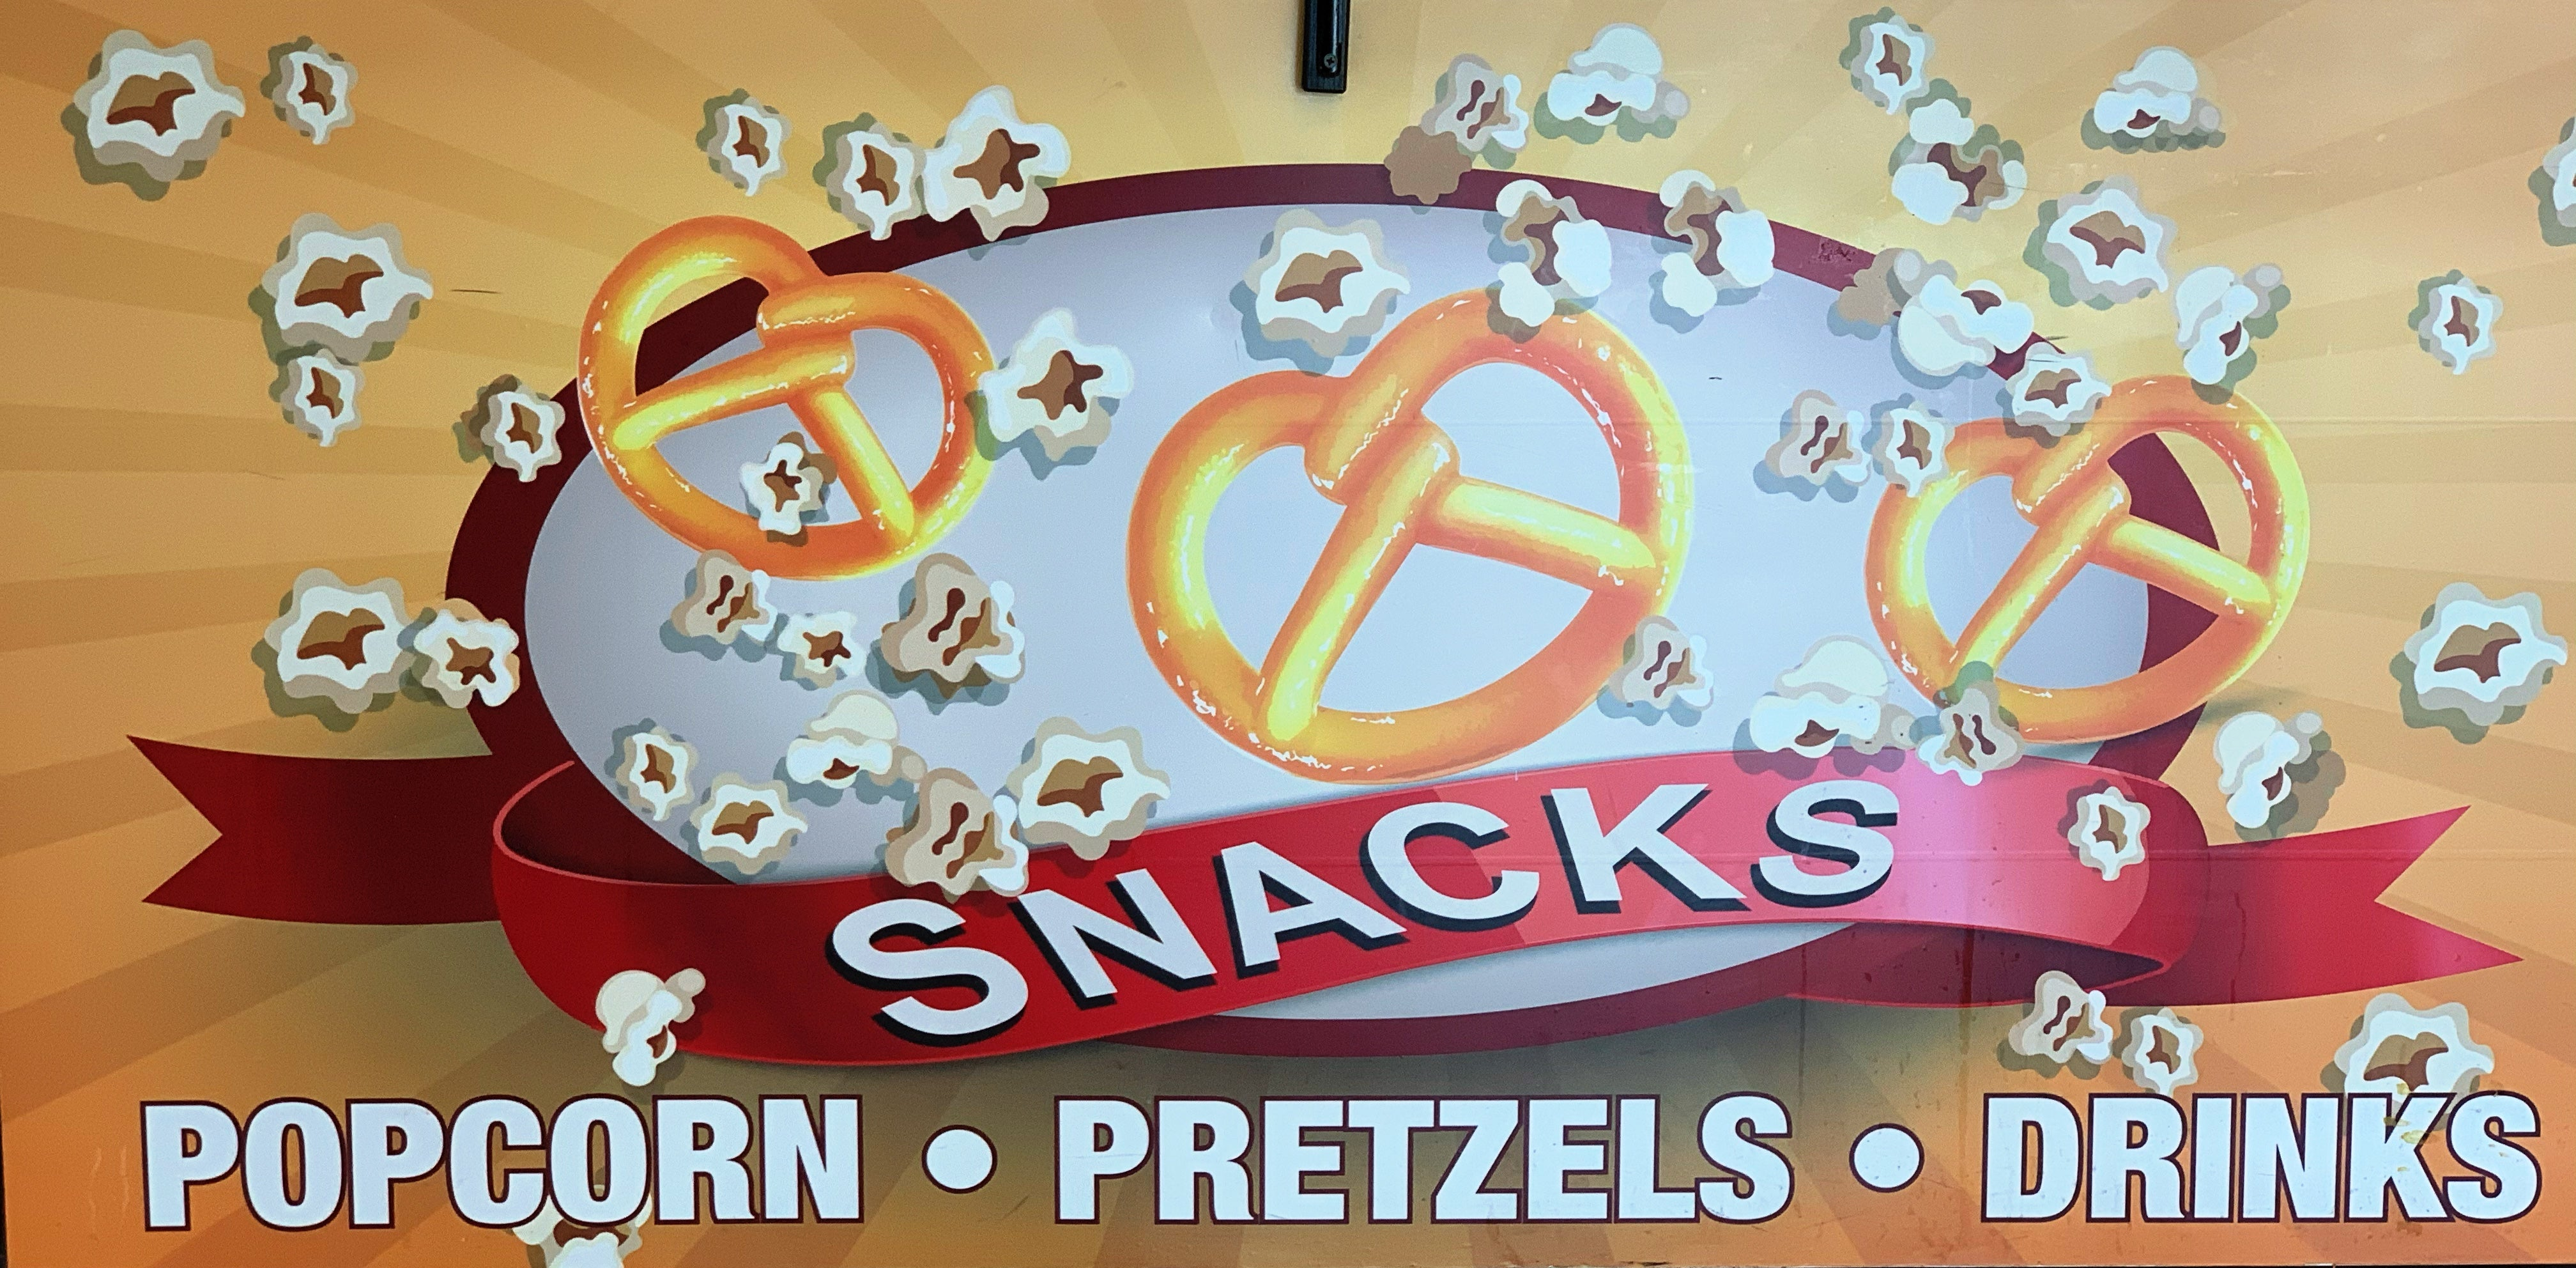 Popcorn & Pretzels: Sections 103, 118, 325